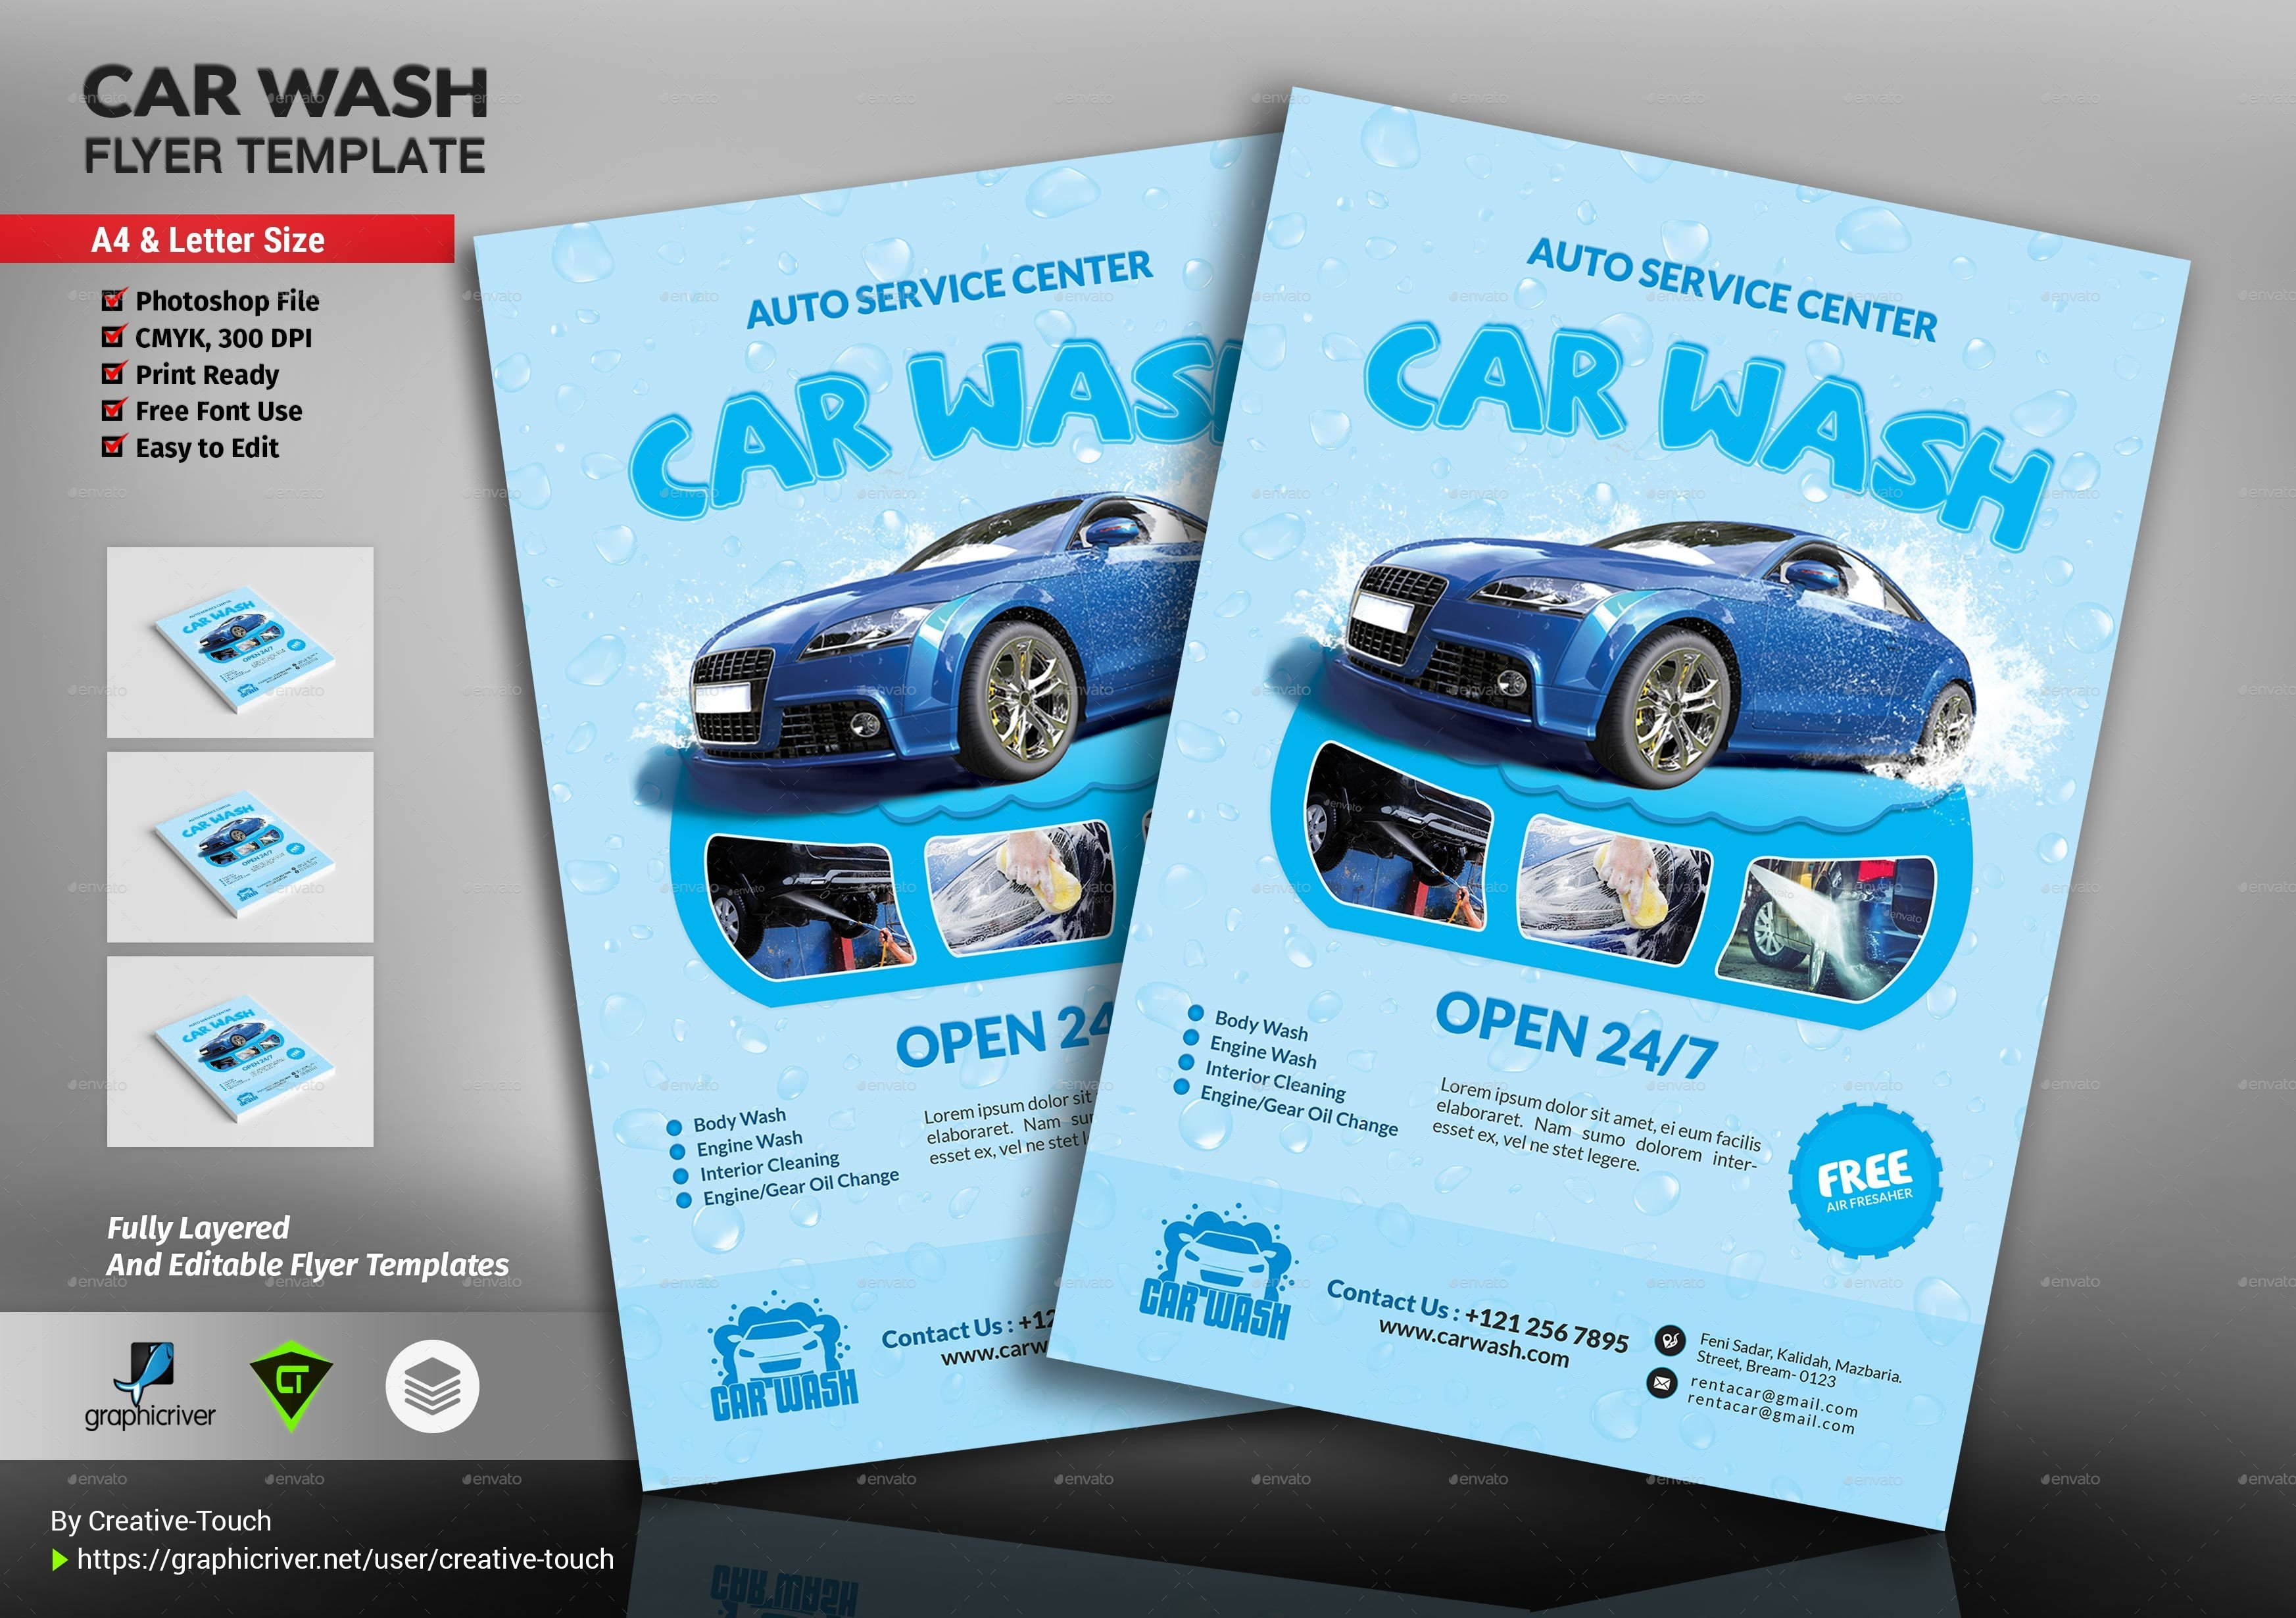 Car Wash Flyer Template Car Wash Flyer Template by Creative touch